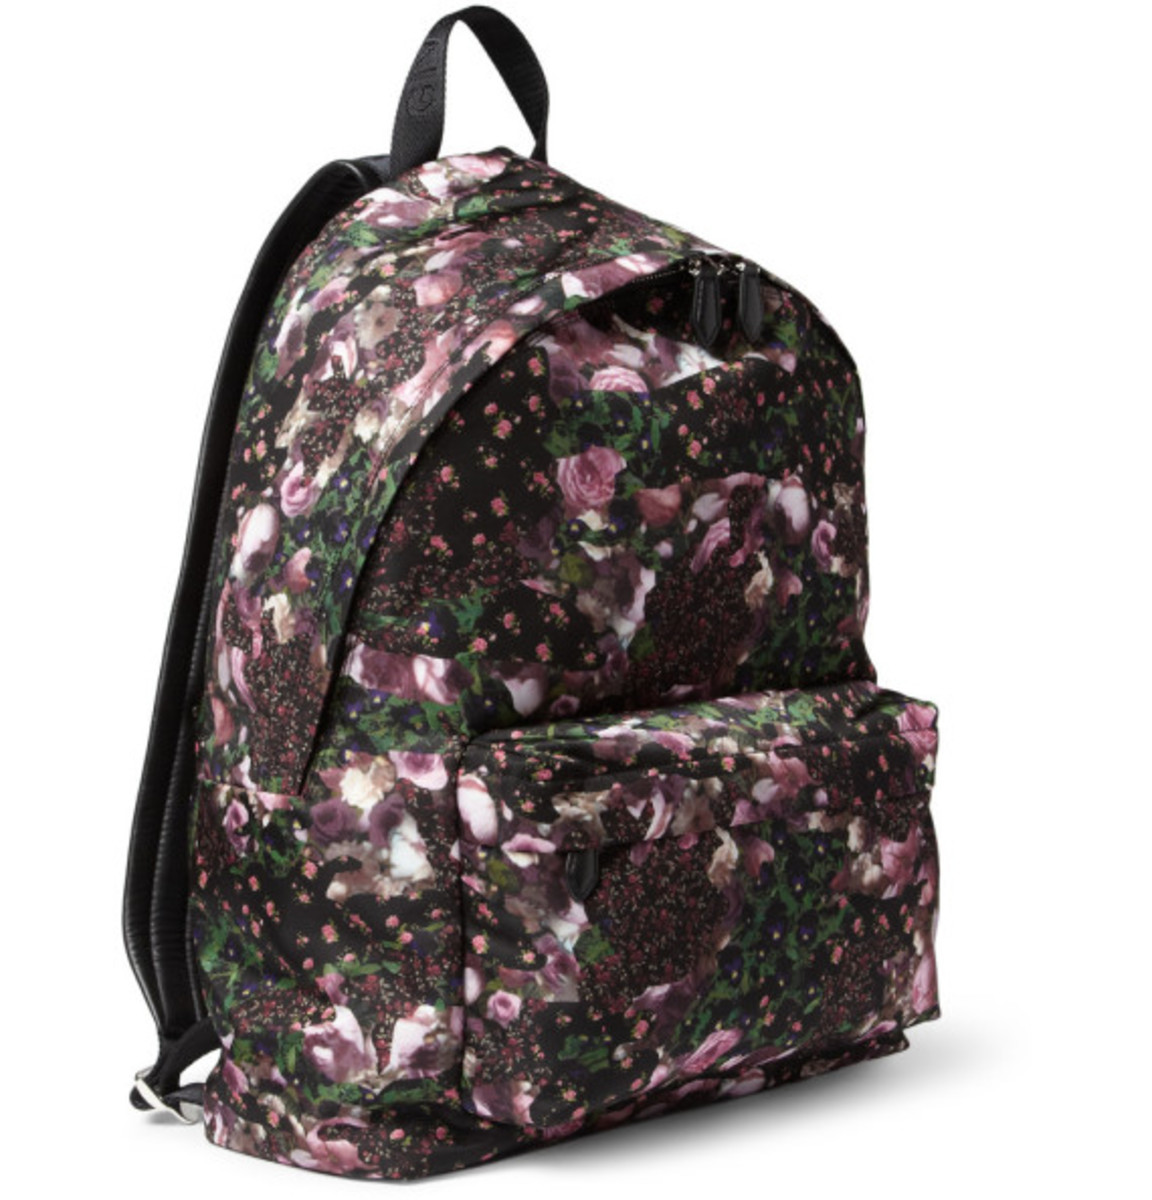 givenchy-floral-print-backpack-04